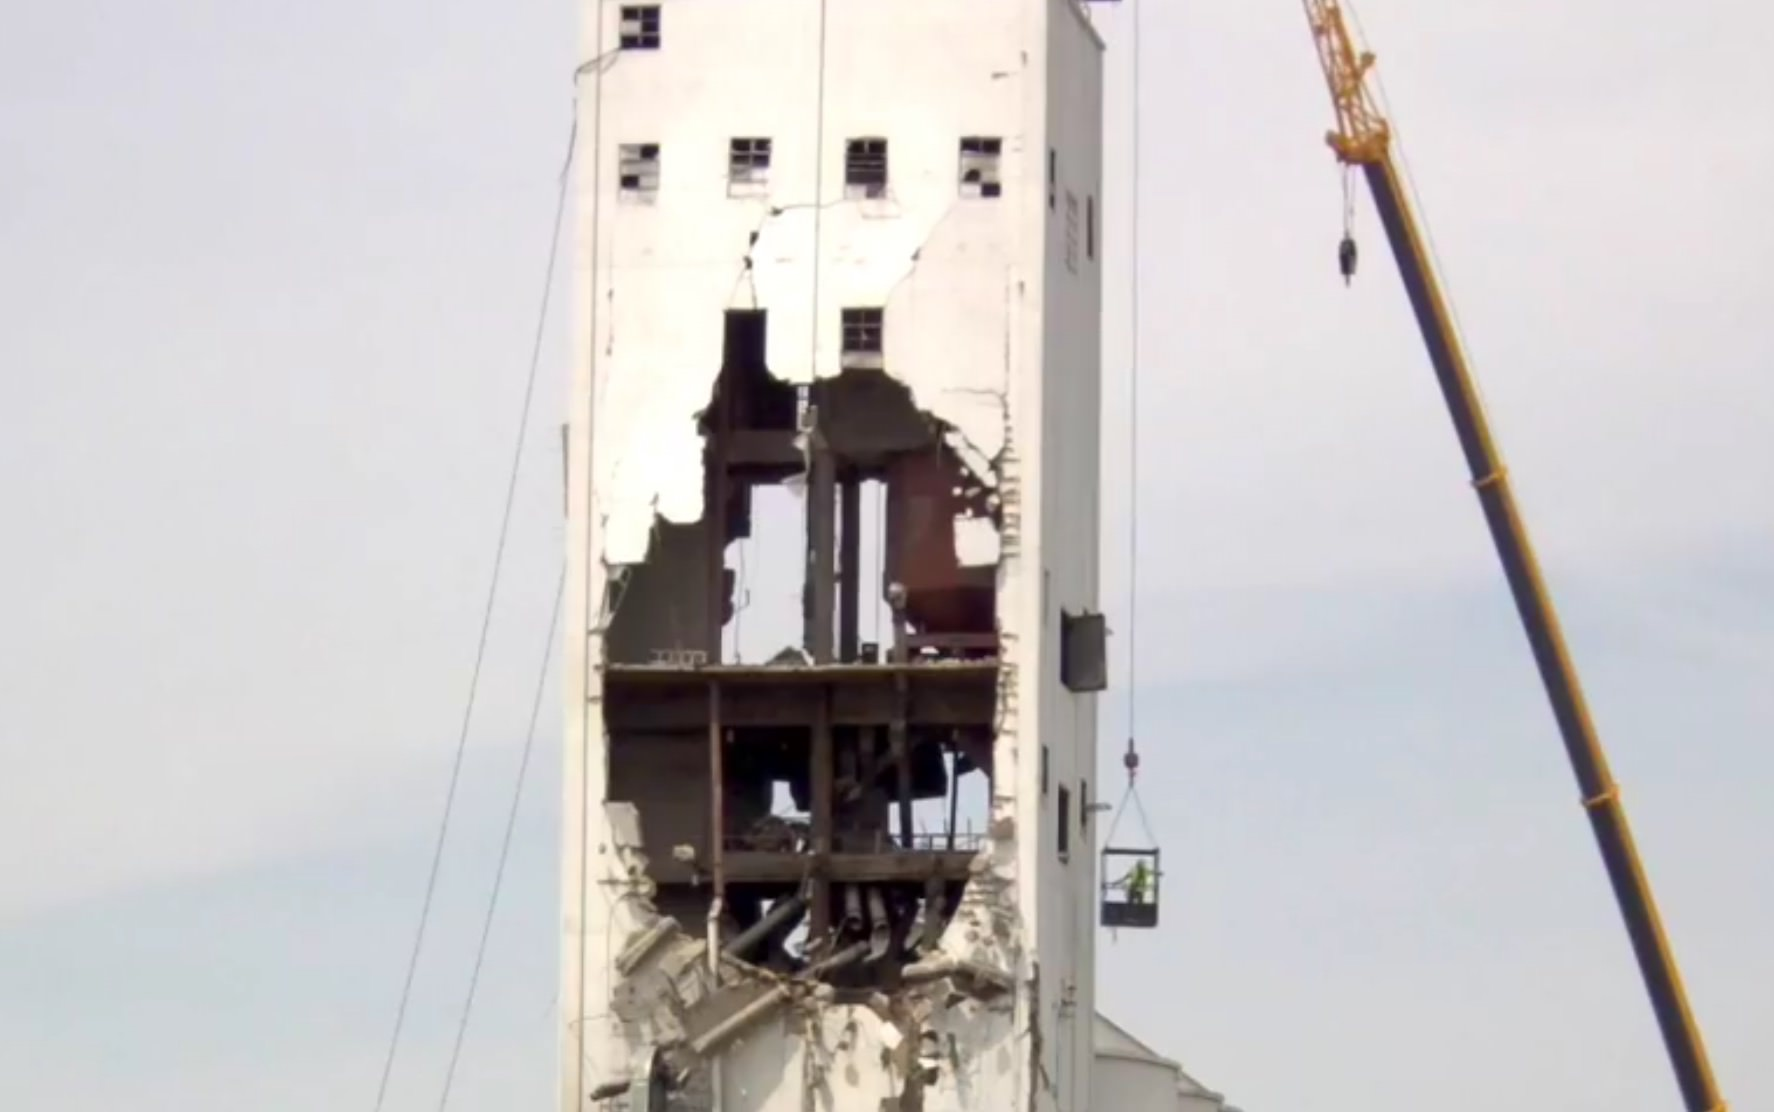 Live Feed of South Sioux City Grain Elevator Demolition Day 14